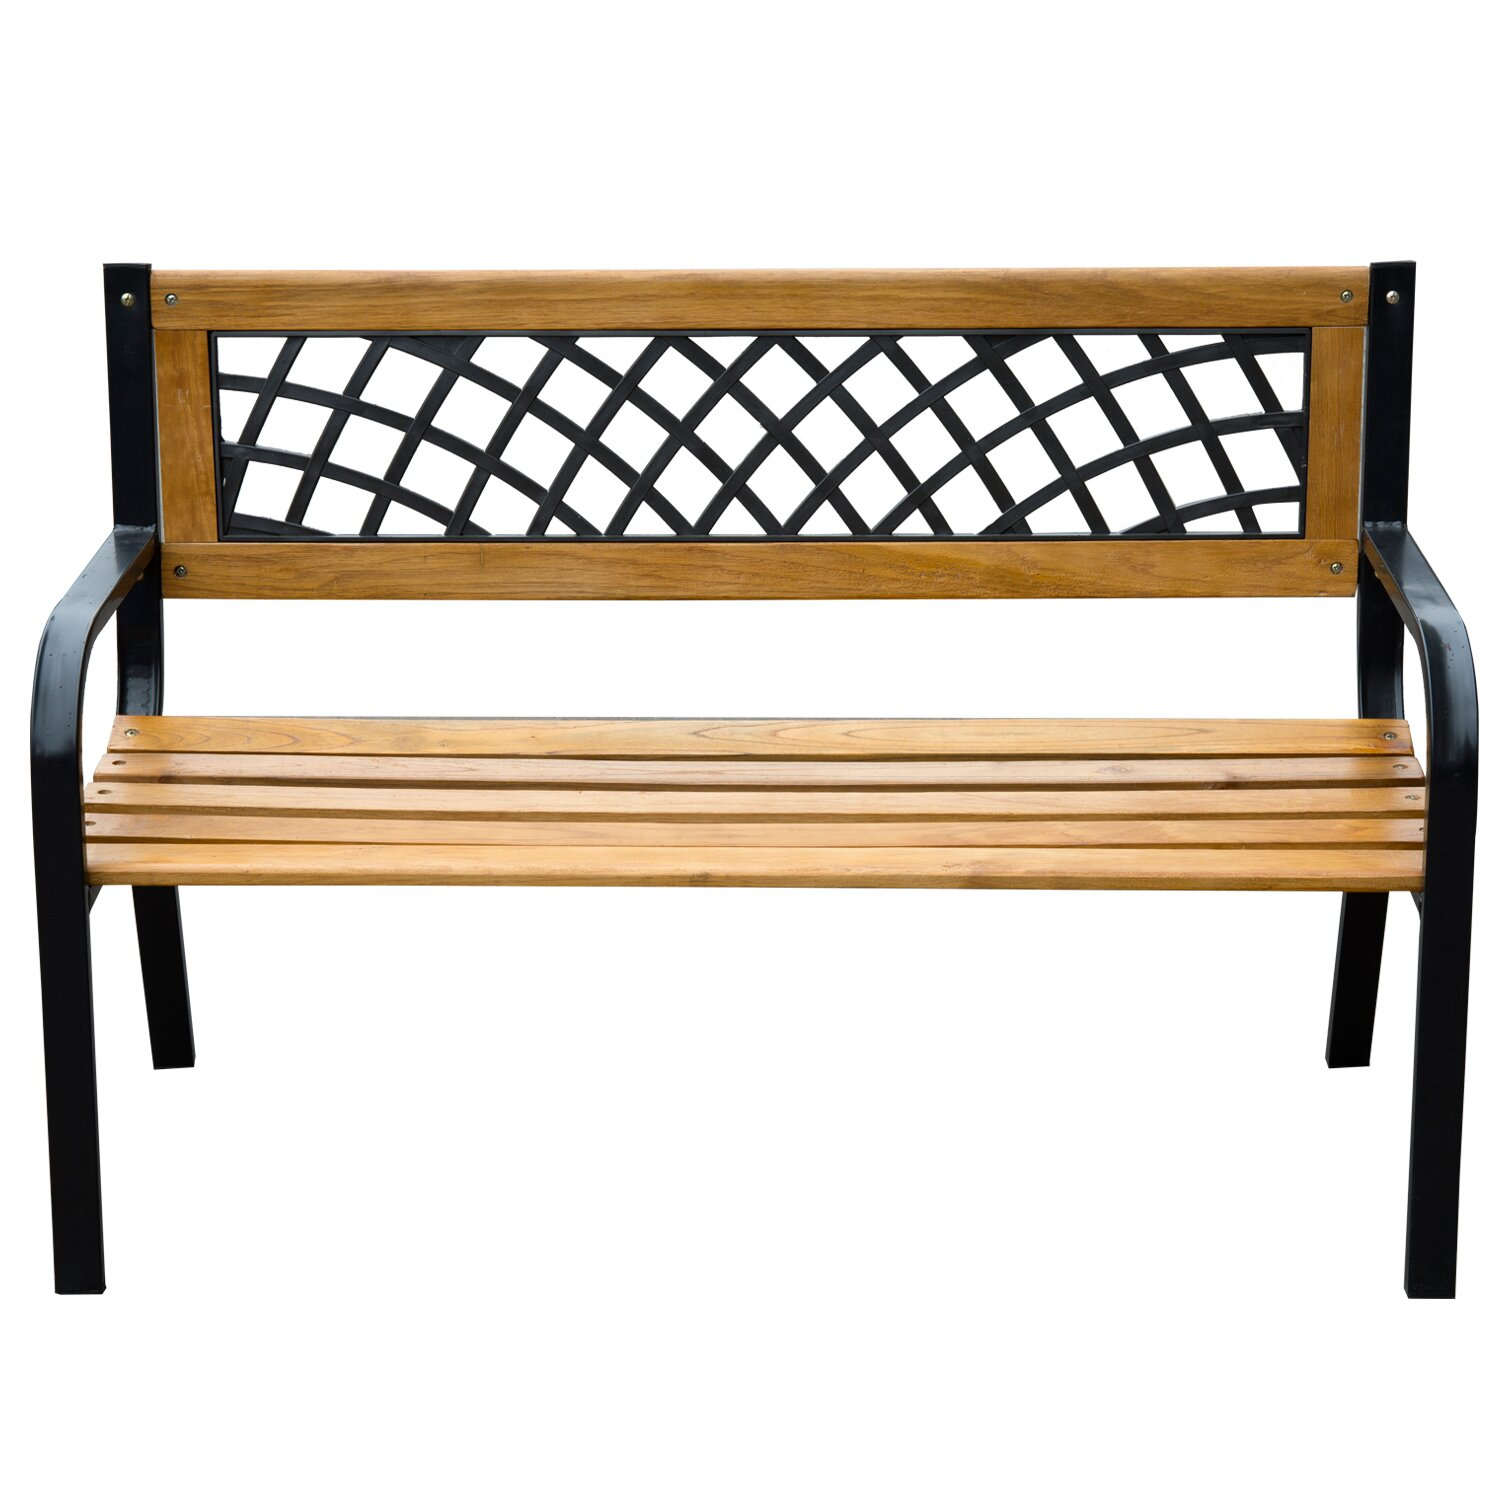 Wooden Park Benches ~ Outsunny modern wood park bench reviews wayfair